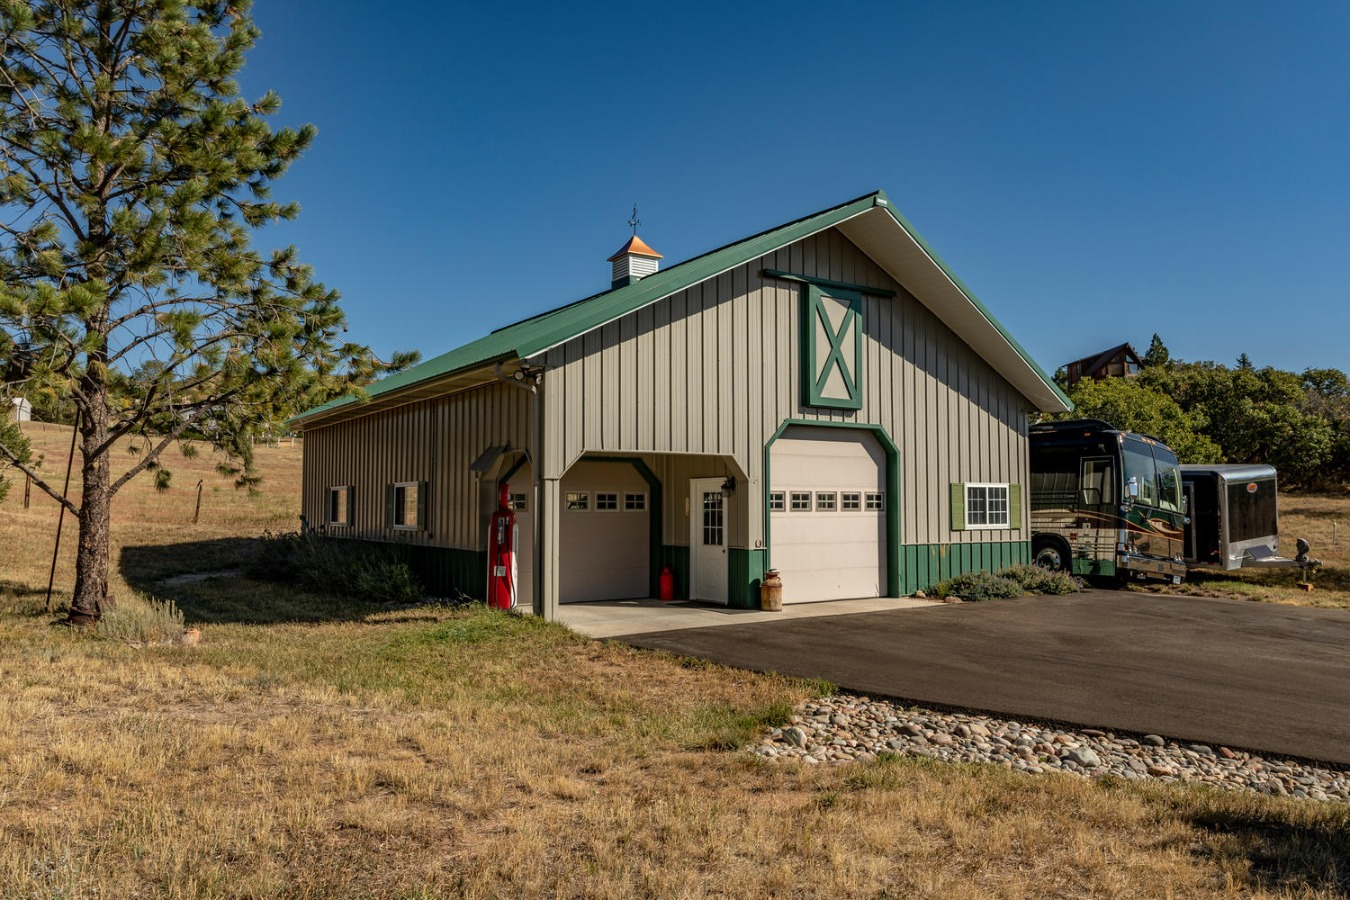 Plus, a 45 x 35 Insulated & Heated Morton Building